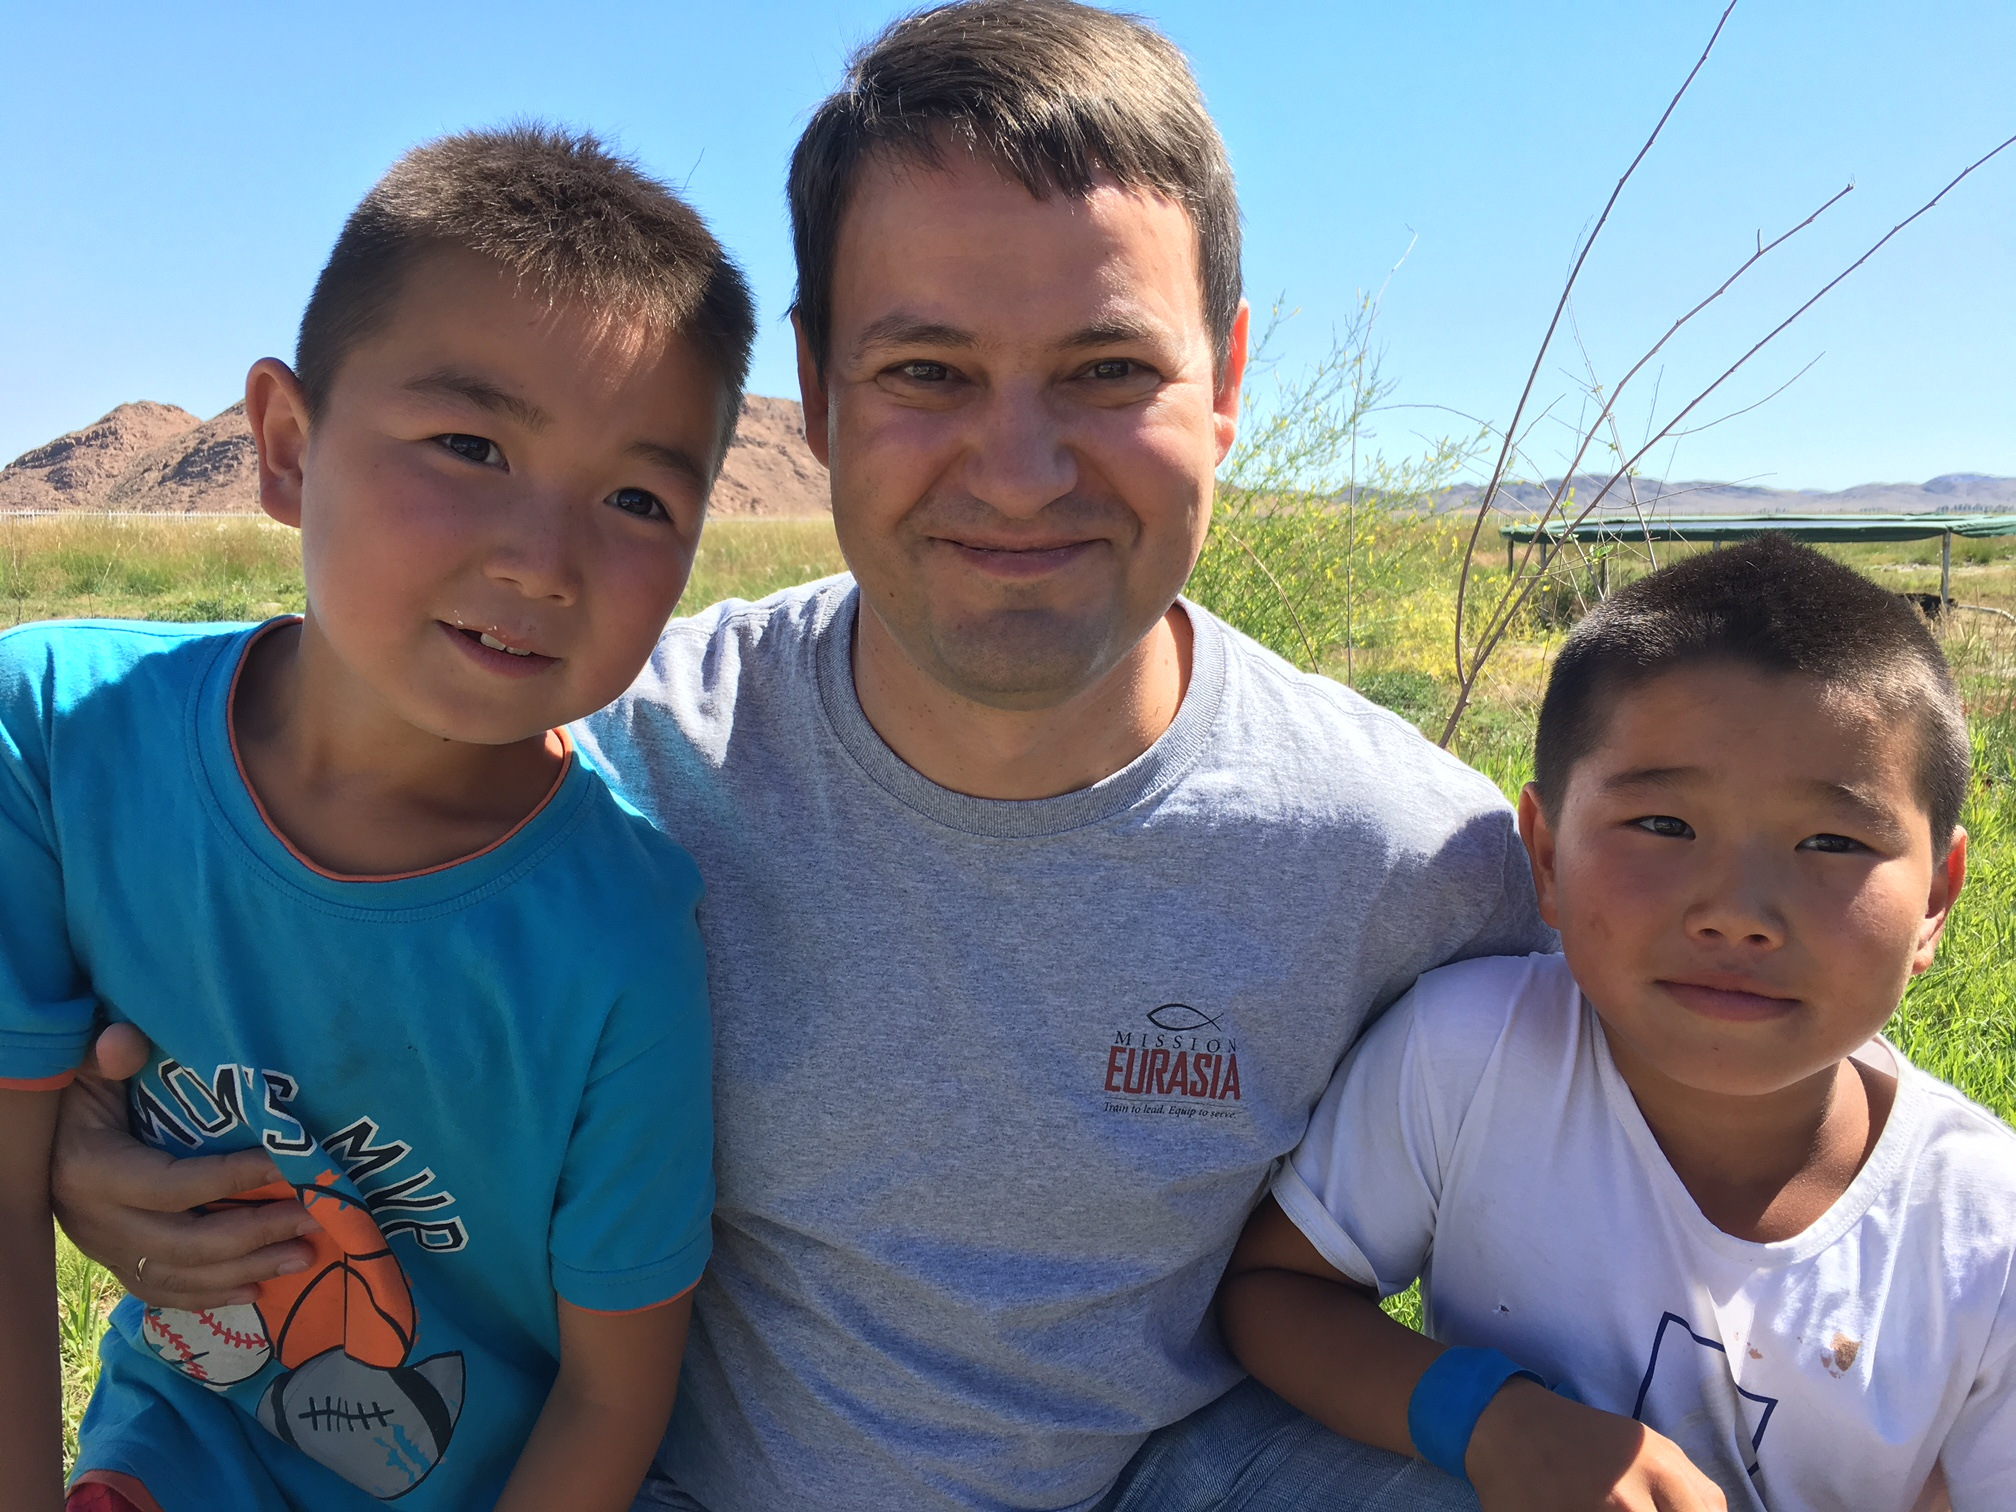 Michael Cherenkov with children at a summer Bible camp in Mongolia